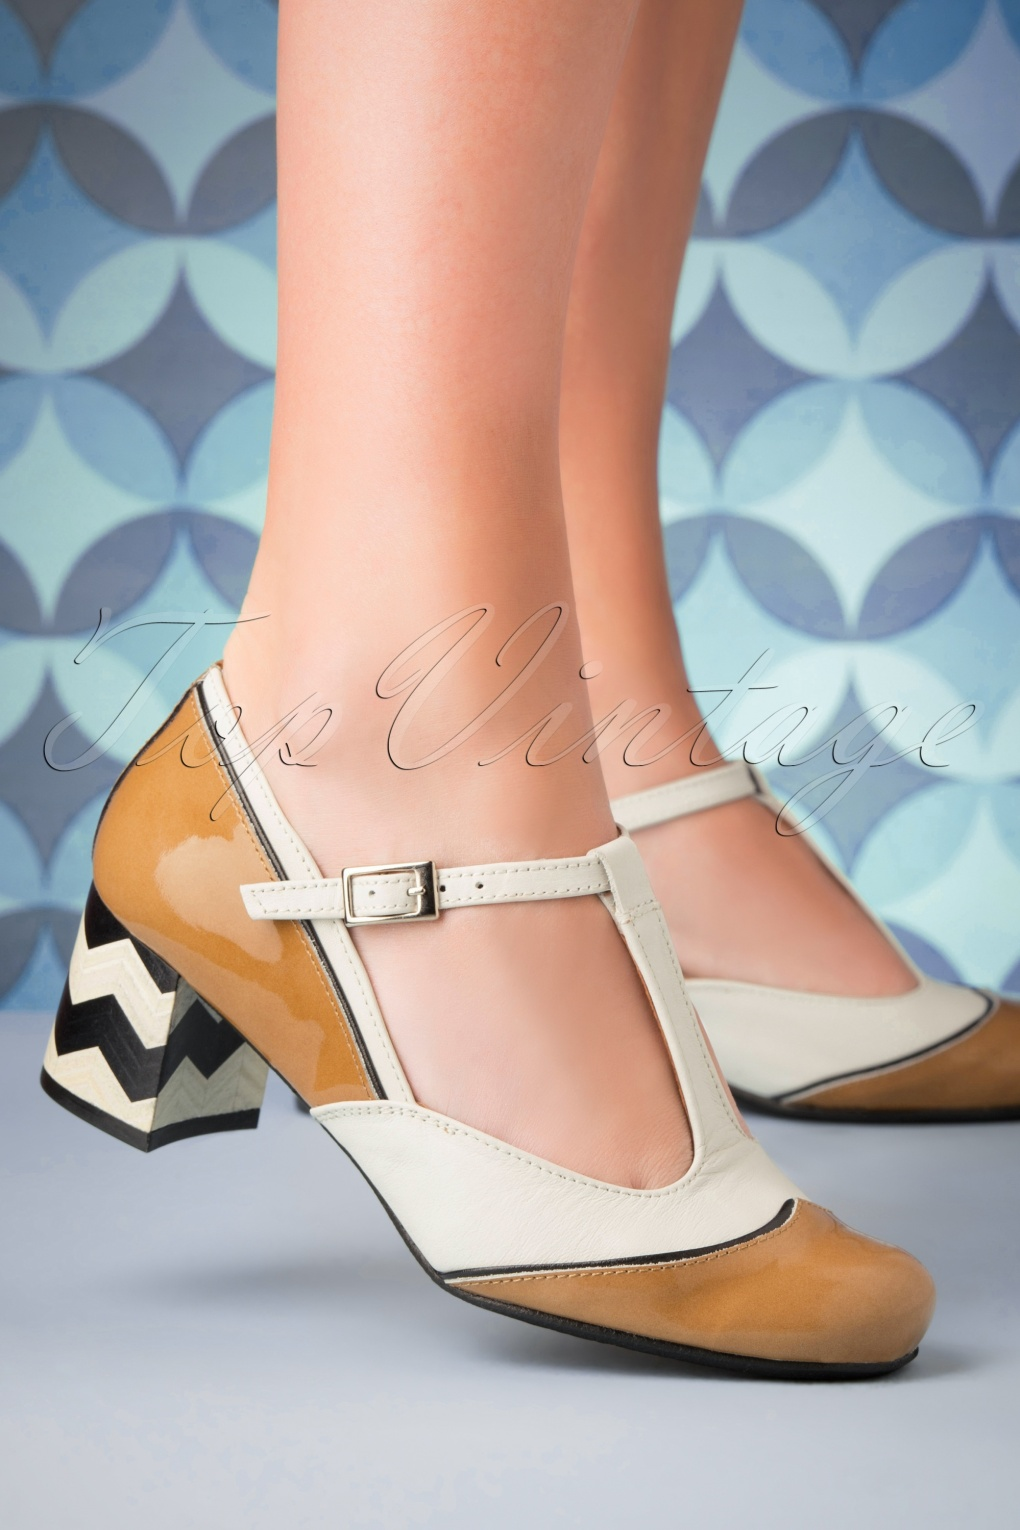 60s Dresses & 60s Style Dresses UK 60s Vintage Cat Leather Pumps in Camel £108.47 AT vintagedancer.com